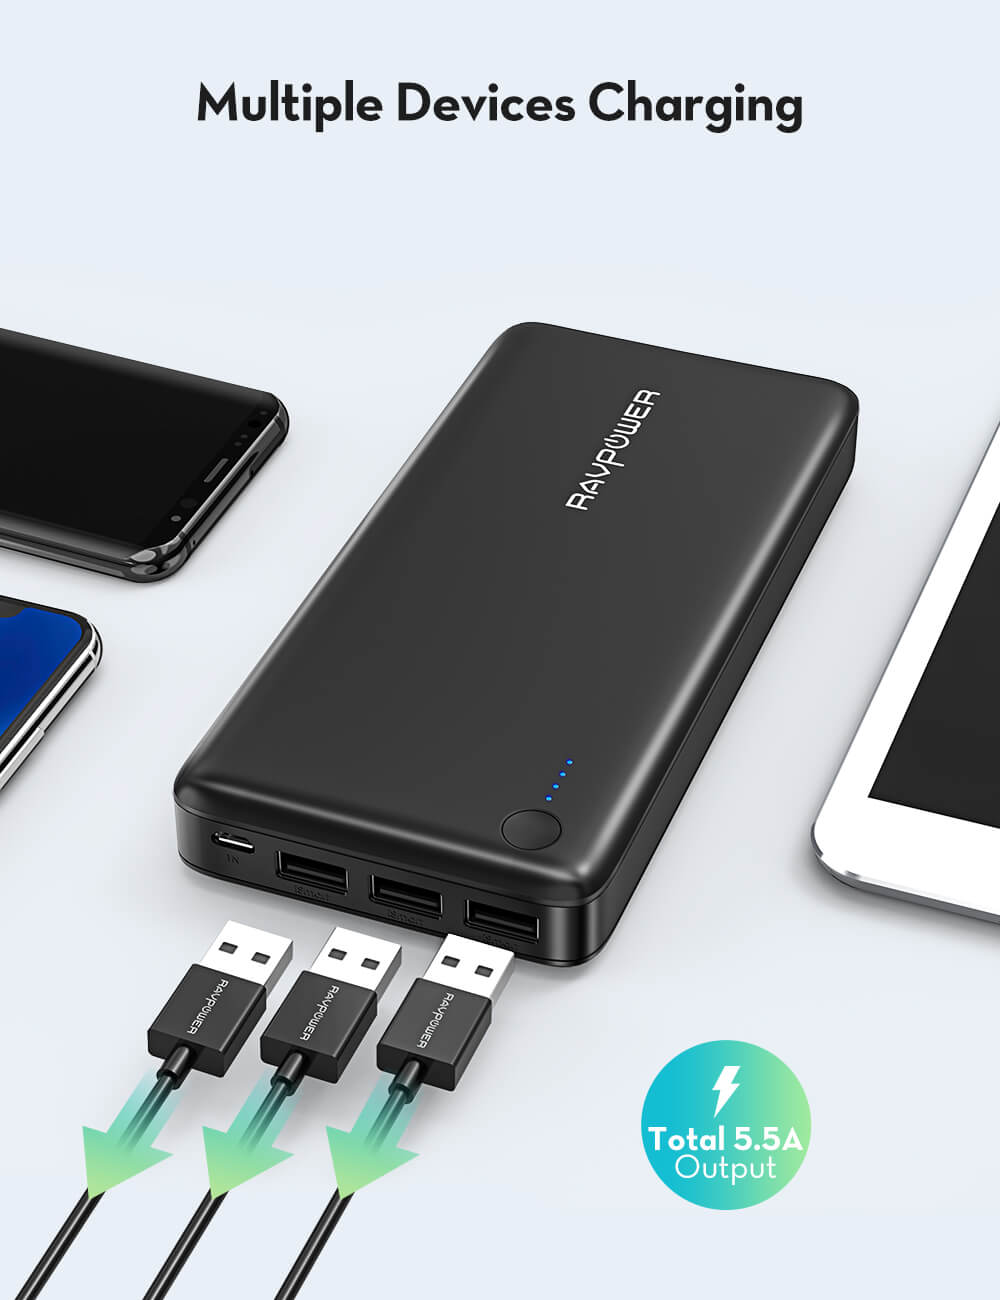 Prime 26800mAh 5.5A 3-Port Power Bank